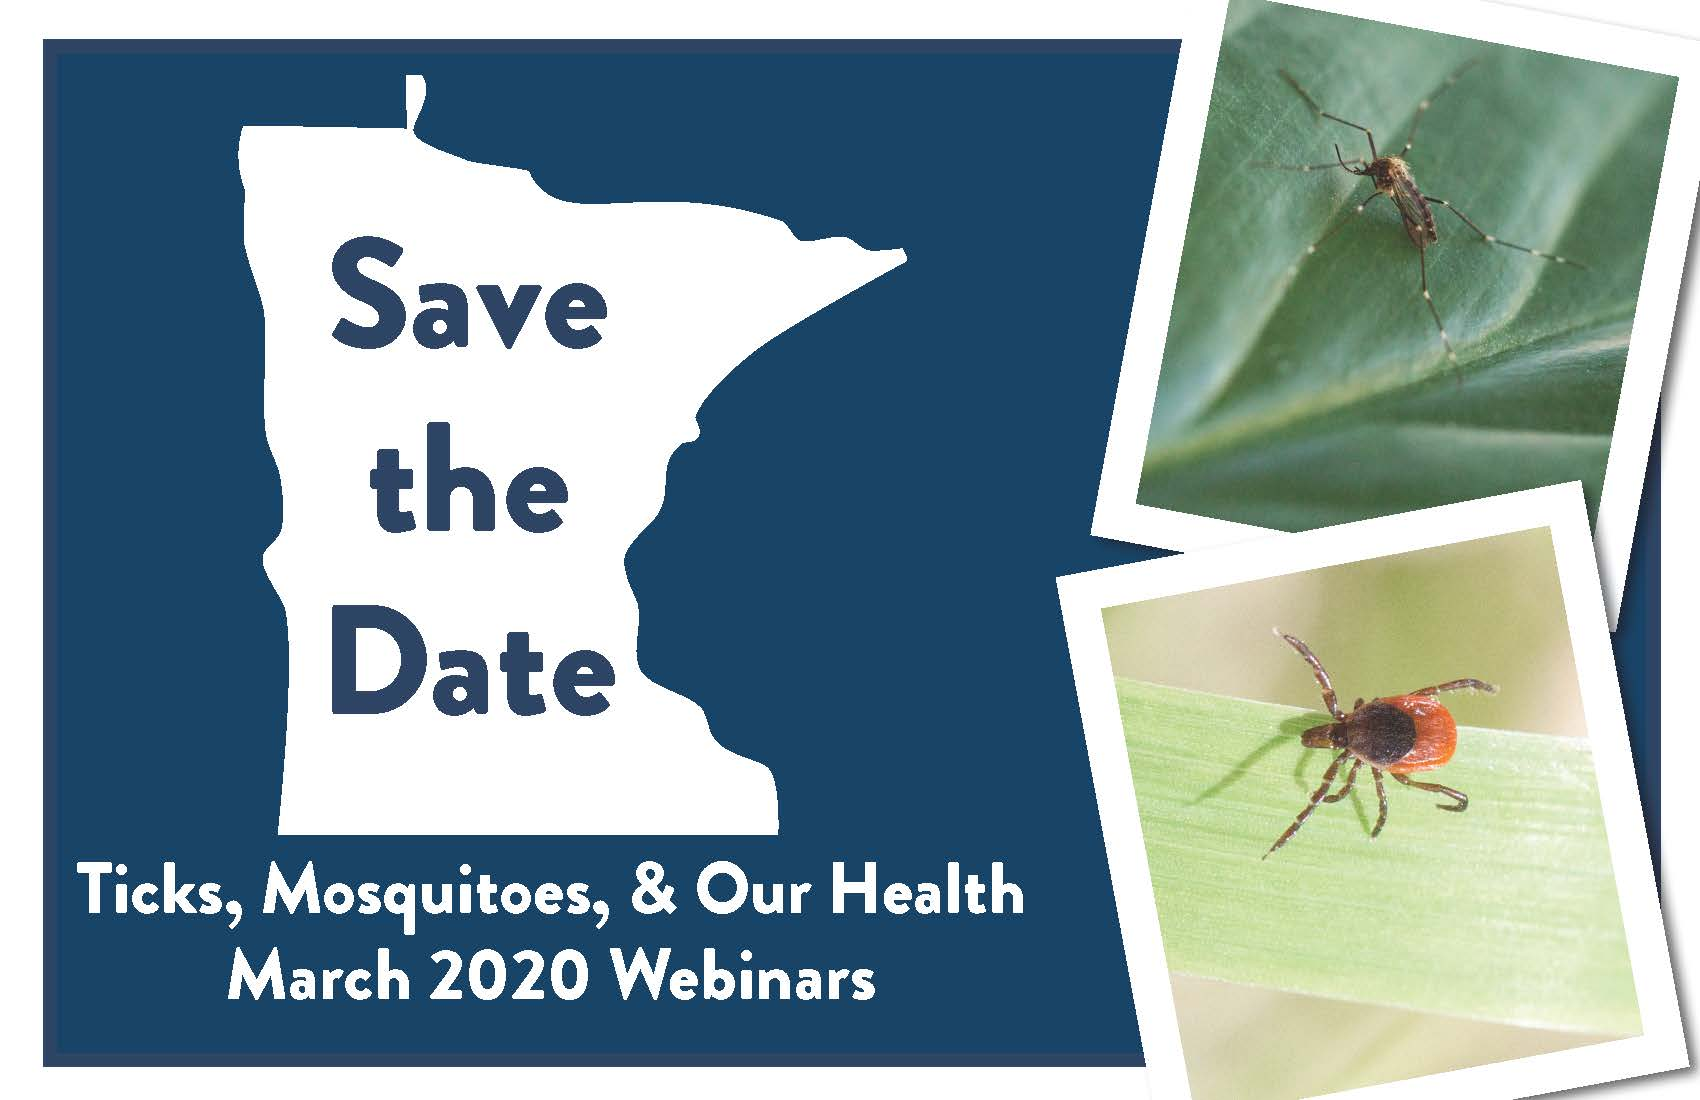 Ticks, Mosquitoes and Our Health Webinars